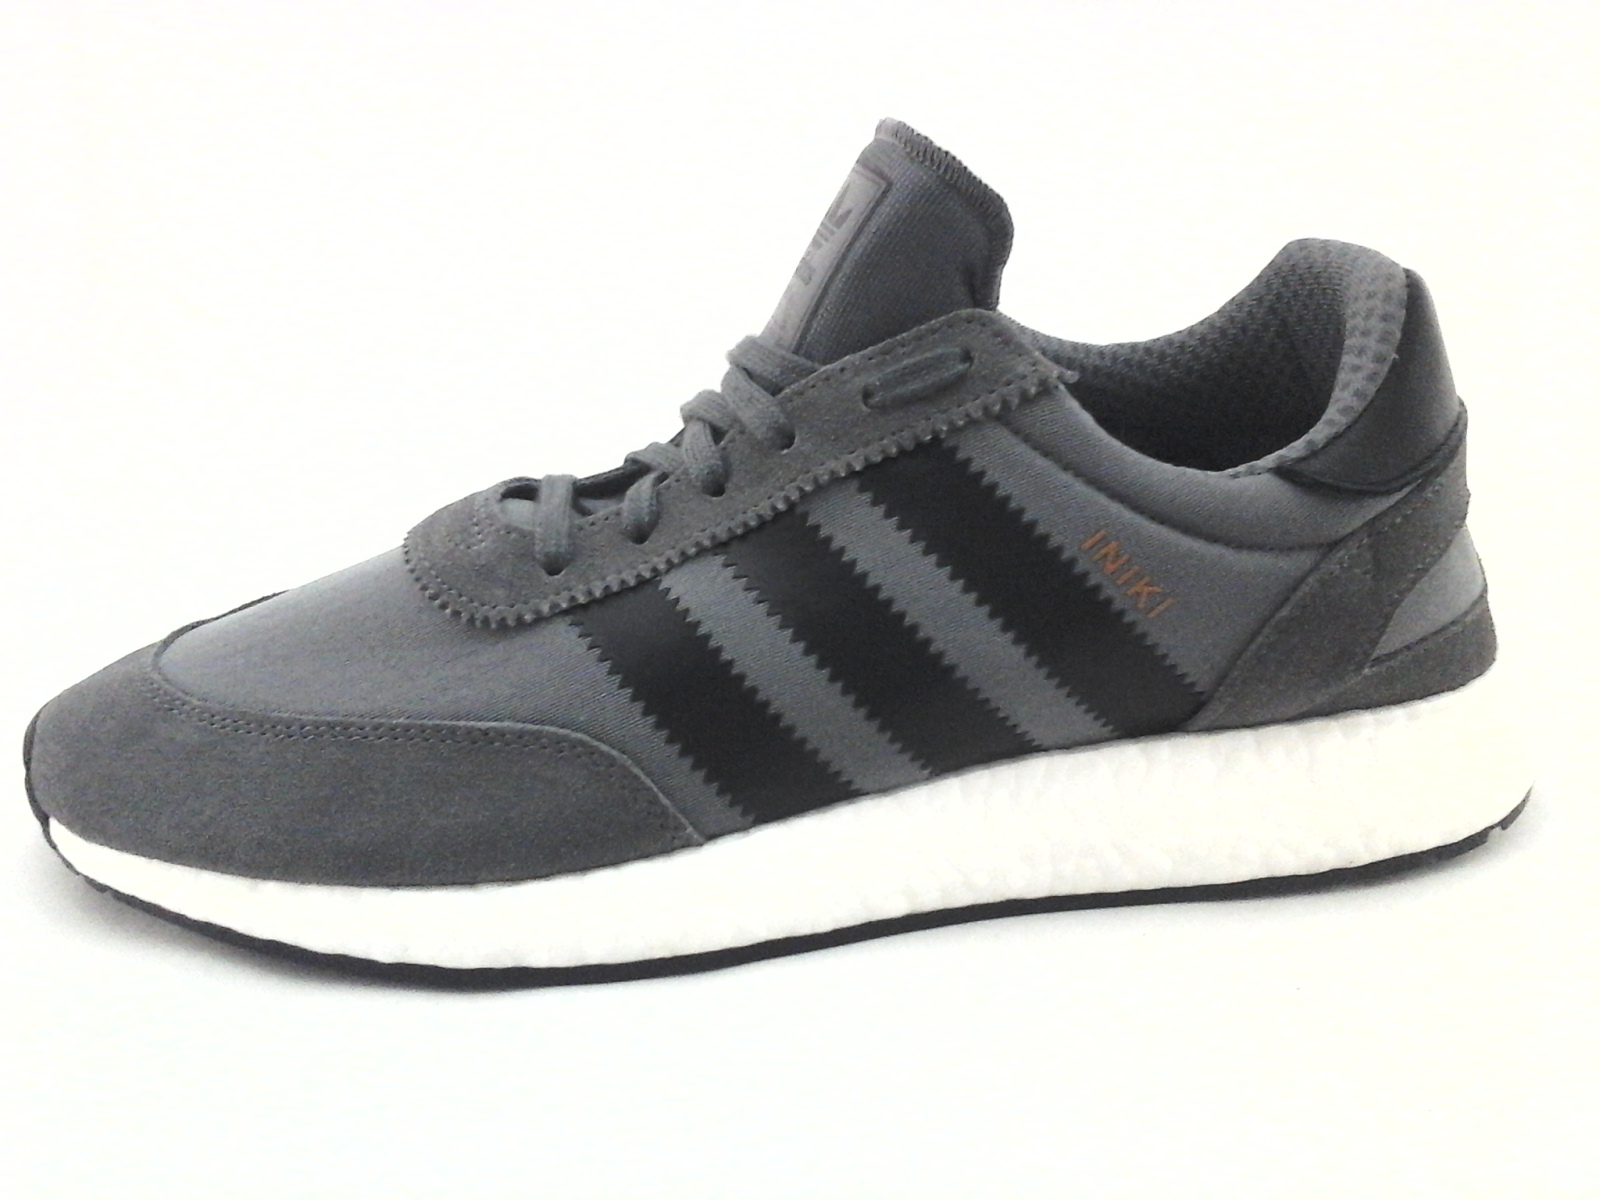 huge discount 6499d ebc5f ADIDAS Originals INIKI Boost Running Shoes Gray w Black BY9732 Men s US 13  EU 48